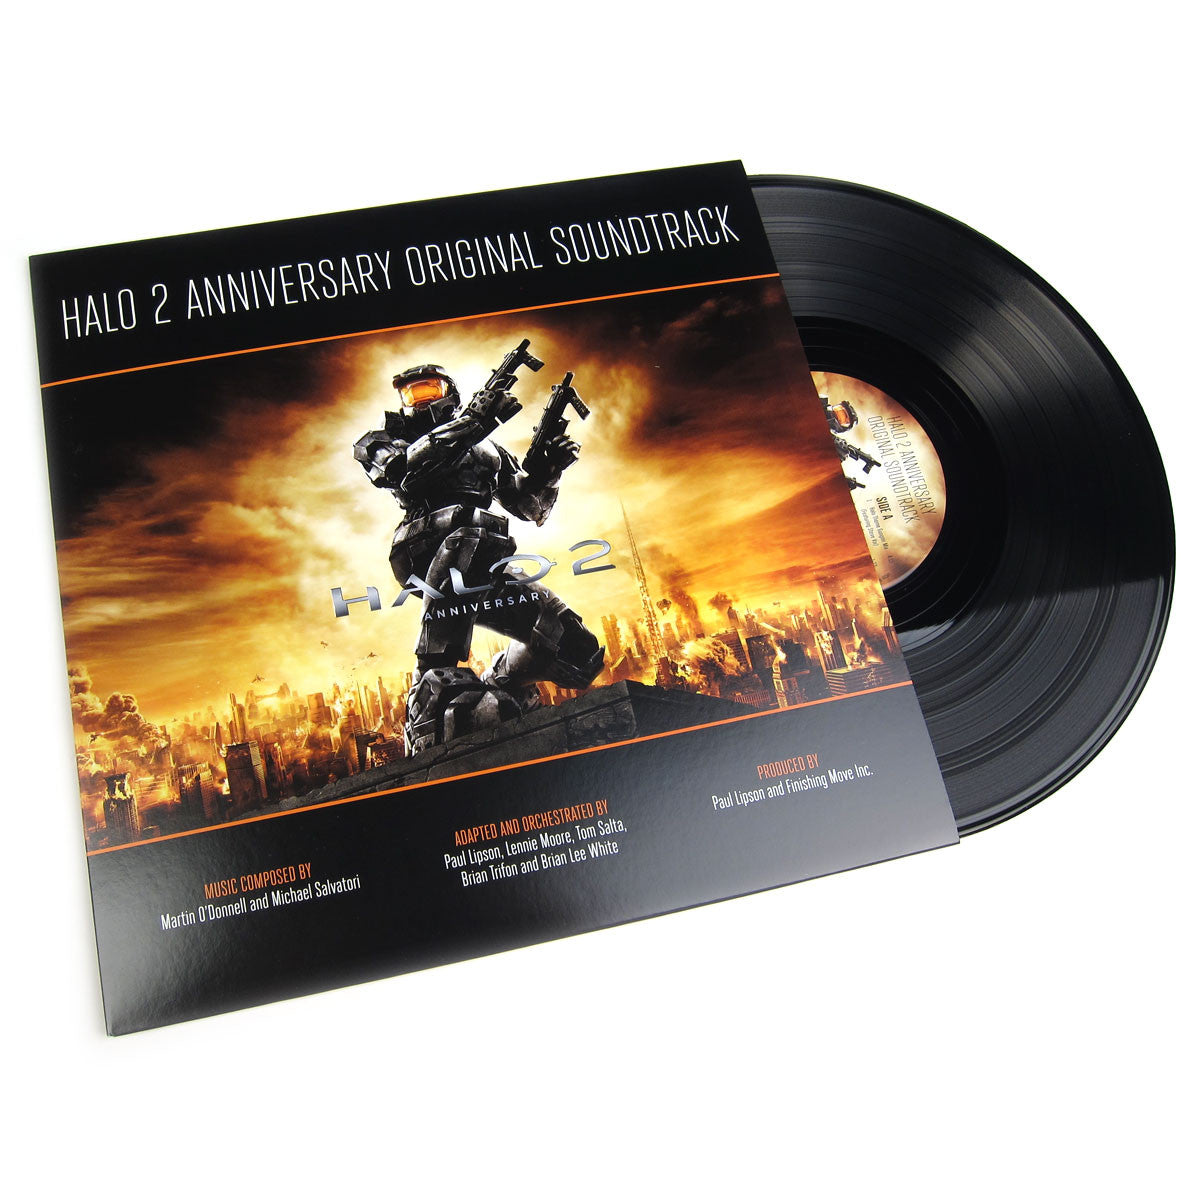 Martin O'Donnell & Michael Salvatori: Halo 2 Anniversary Soundtrack (Free MP3) Vinyl LP